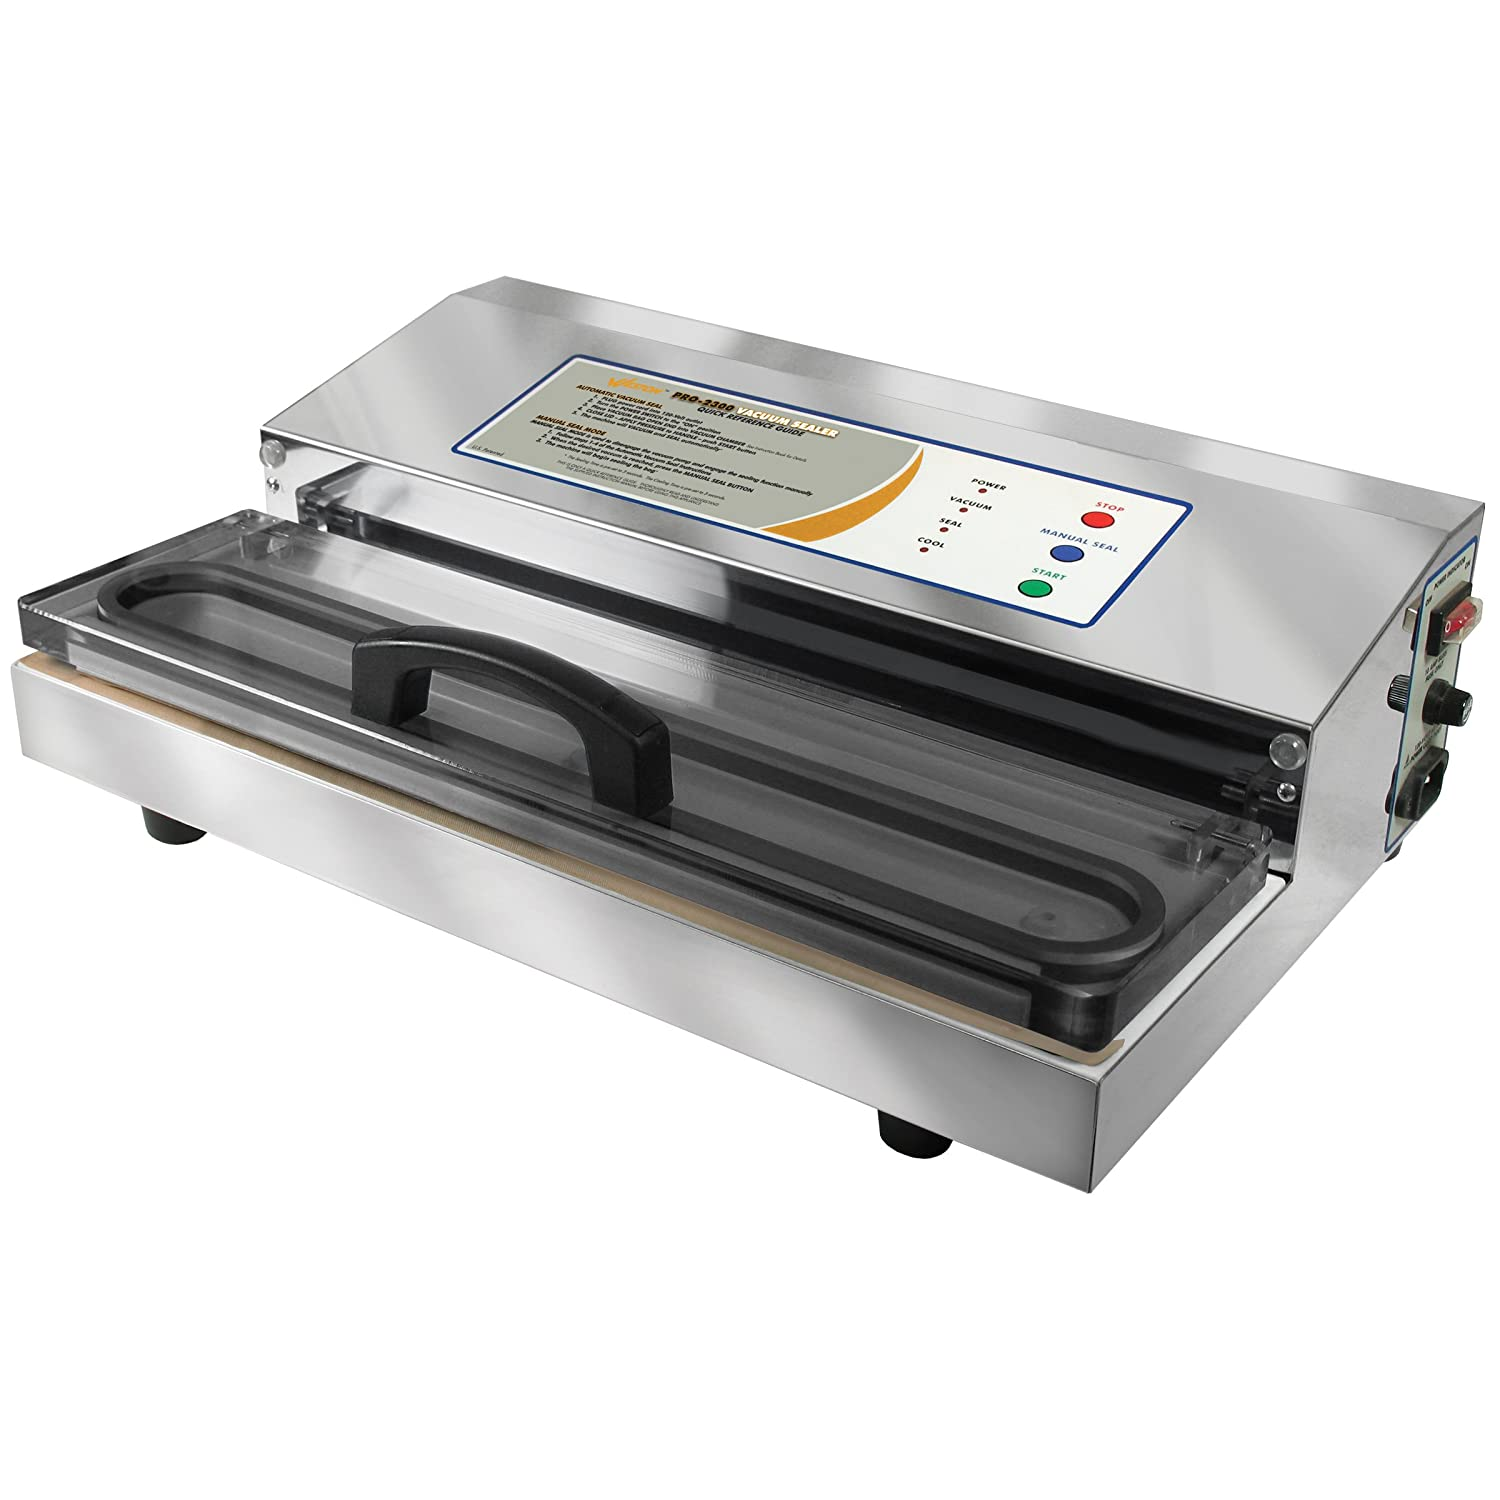 Weston 65-0201 Pro-2300 – Best Channel Vacuum Sealer Review